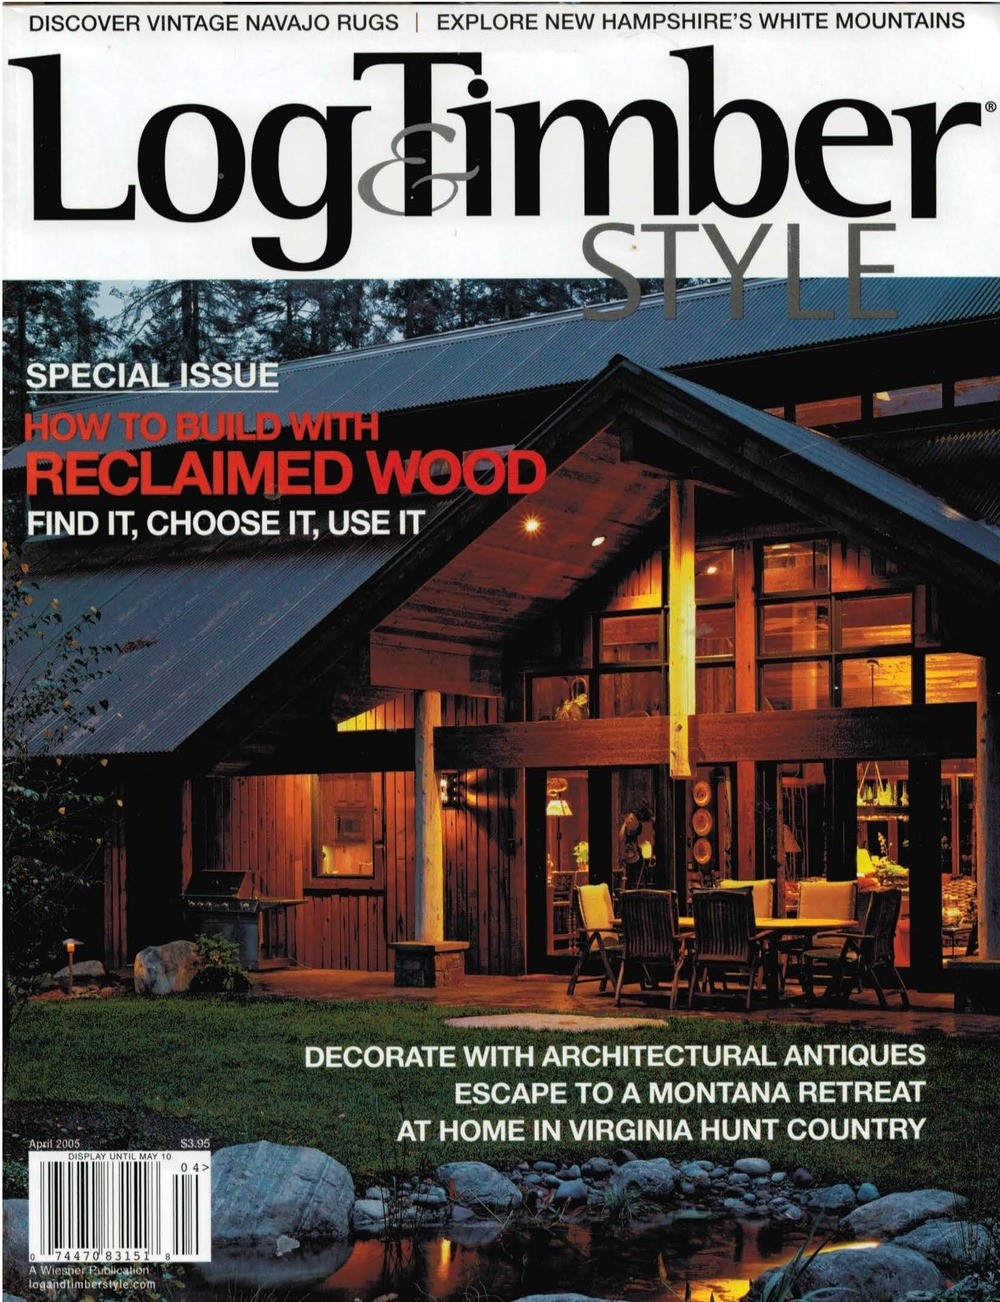 17 Log & Timber Style-April 2005.jpg